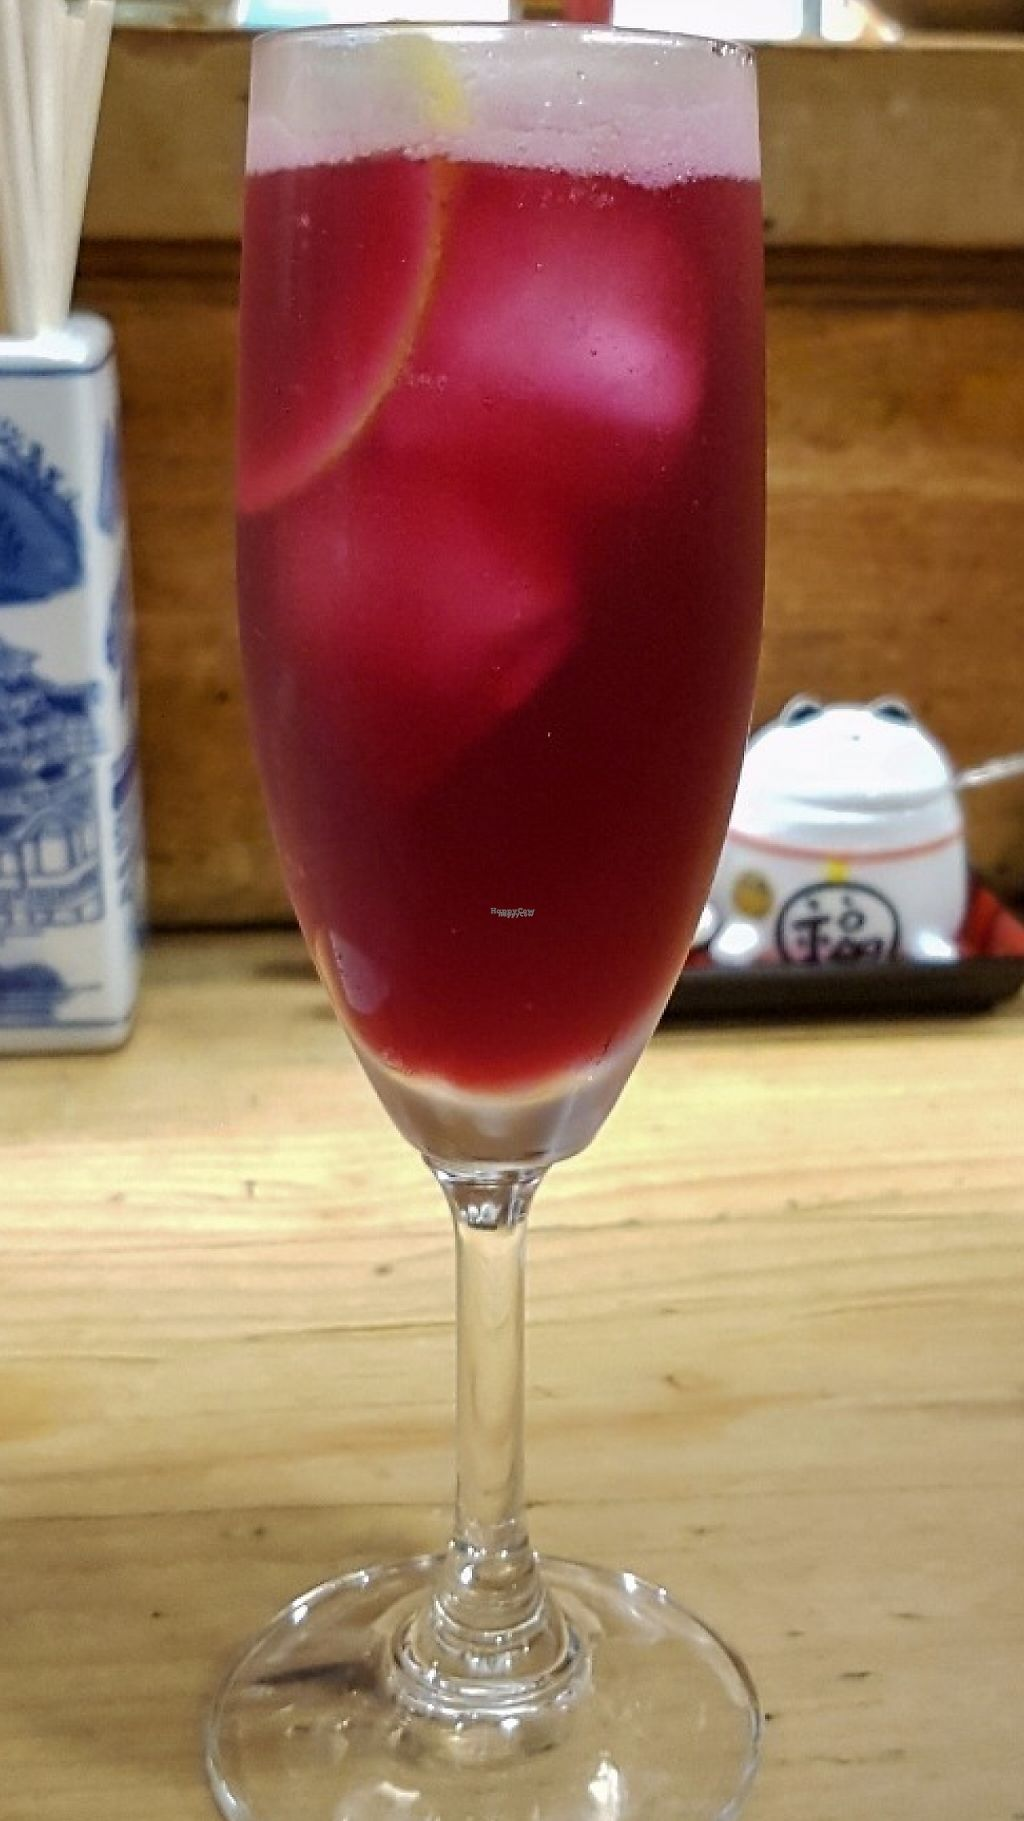 """Photo of Heianraku  by <a href=""""/members/profile/Knoepfchen"""">Knoepfchen</a> <br/>Homemade shiso cocktail <br/> November 2, 2016  - <a href='/contact/abuse/image/29092/194049'>Report</a>"""